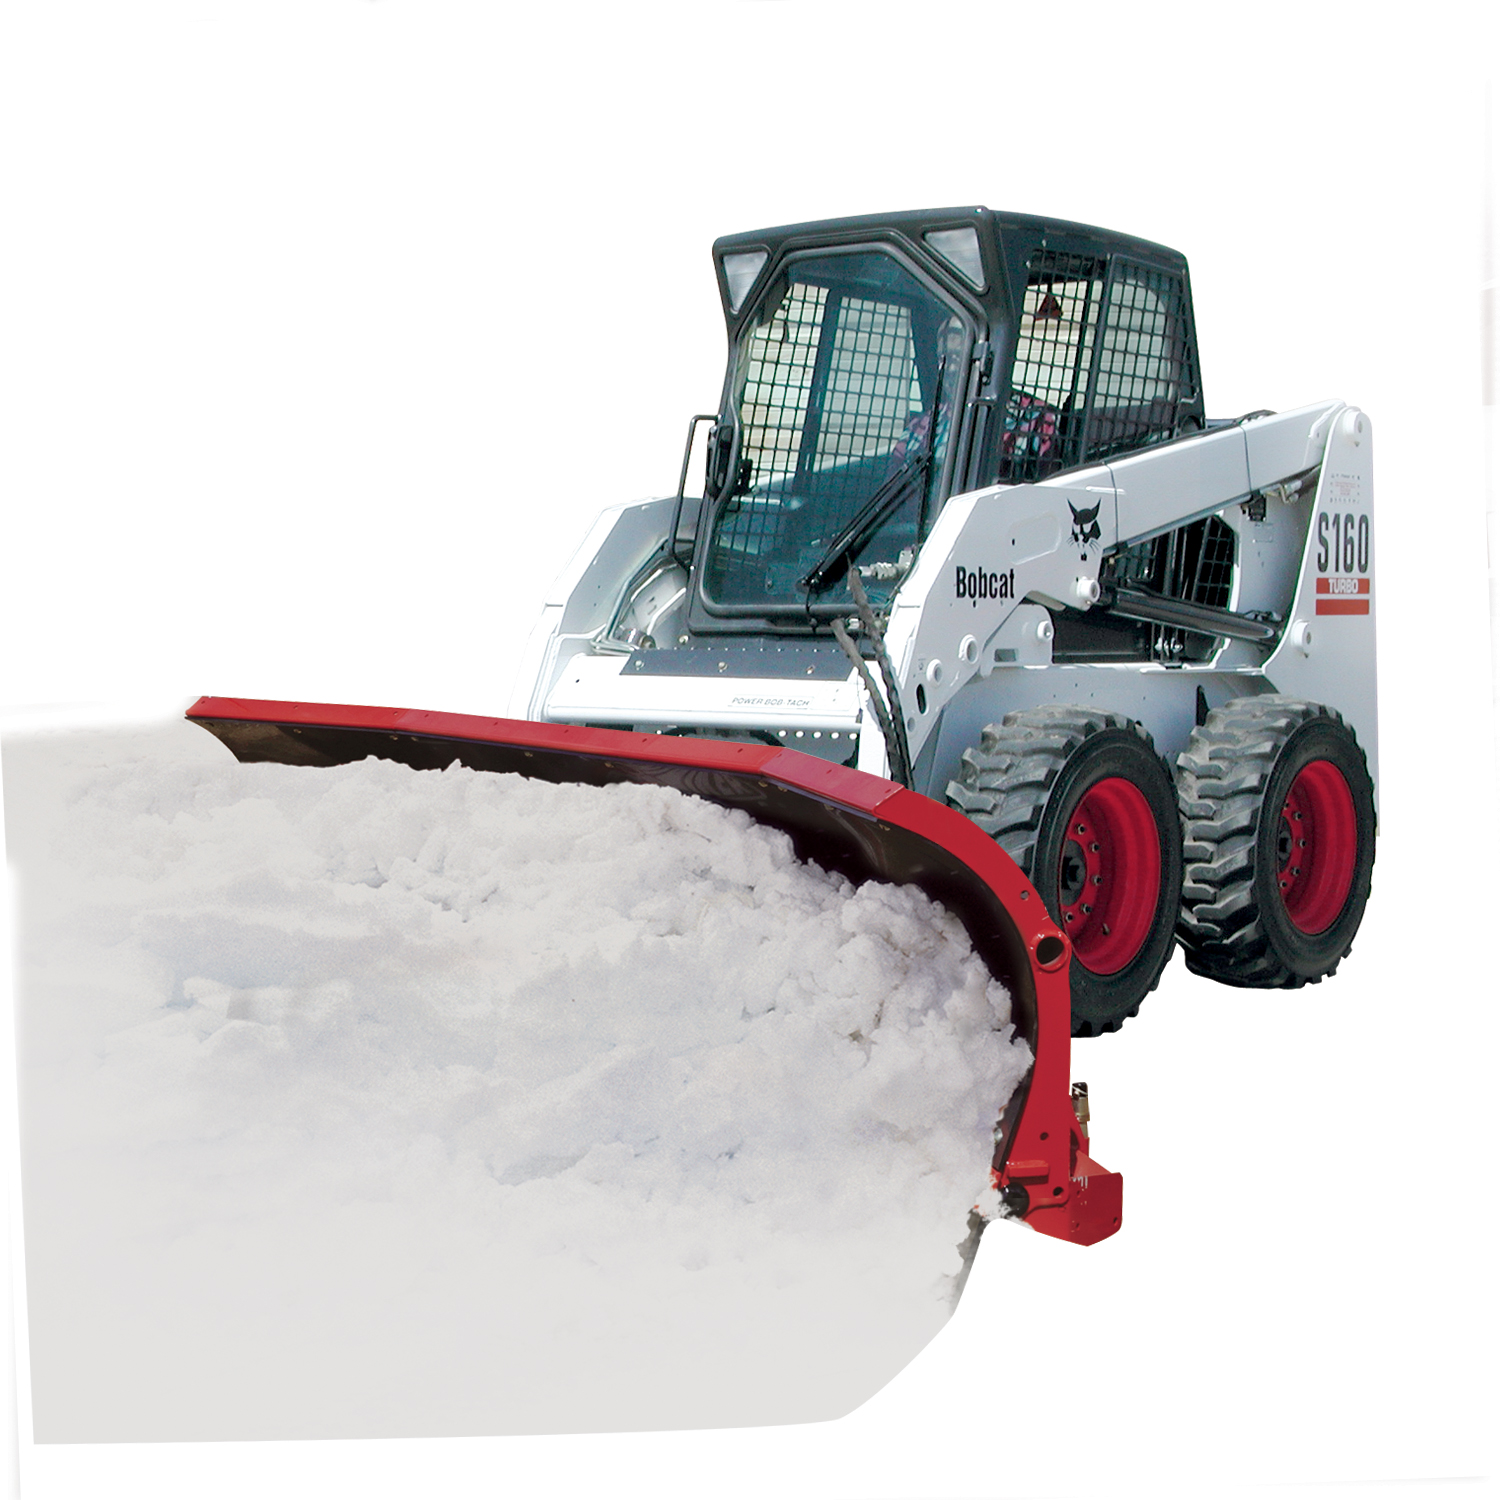 New Hiniker 8 Trip Edge with crossover relief valve Poly Snowplow, Model:2682, Skid Steer